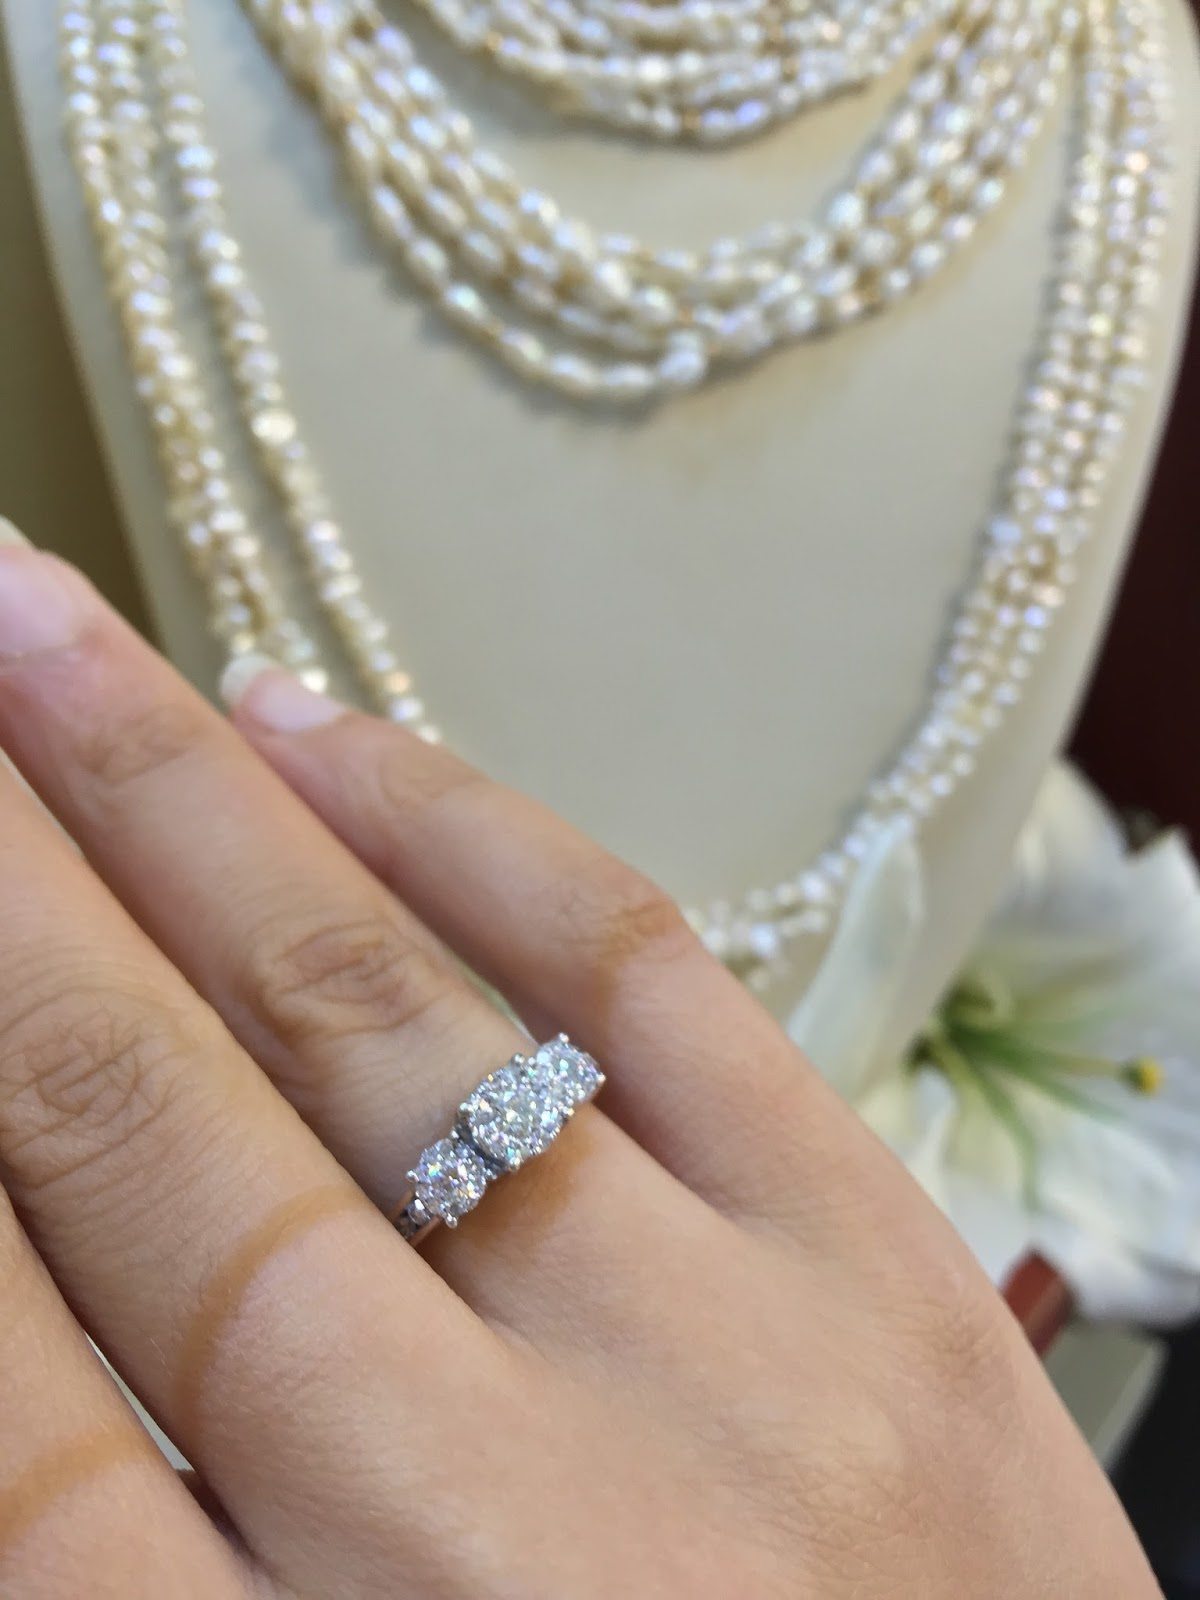 Diamond engagement rings alternatives -  A Traditional Past Present Future Engagement Ring However It Is Actually Made Out Of 3 Sections Of Multiple Diamonds Set As One Diamond In The Middle